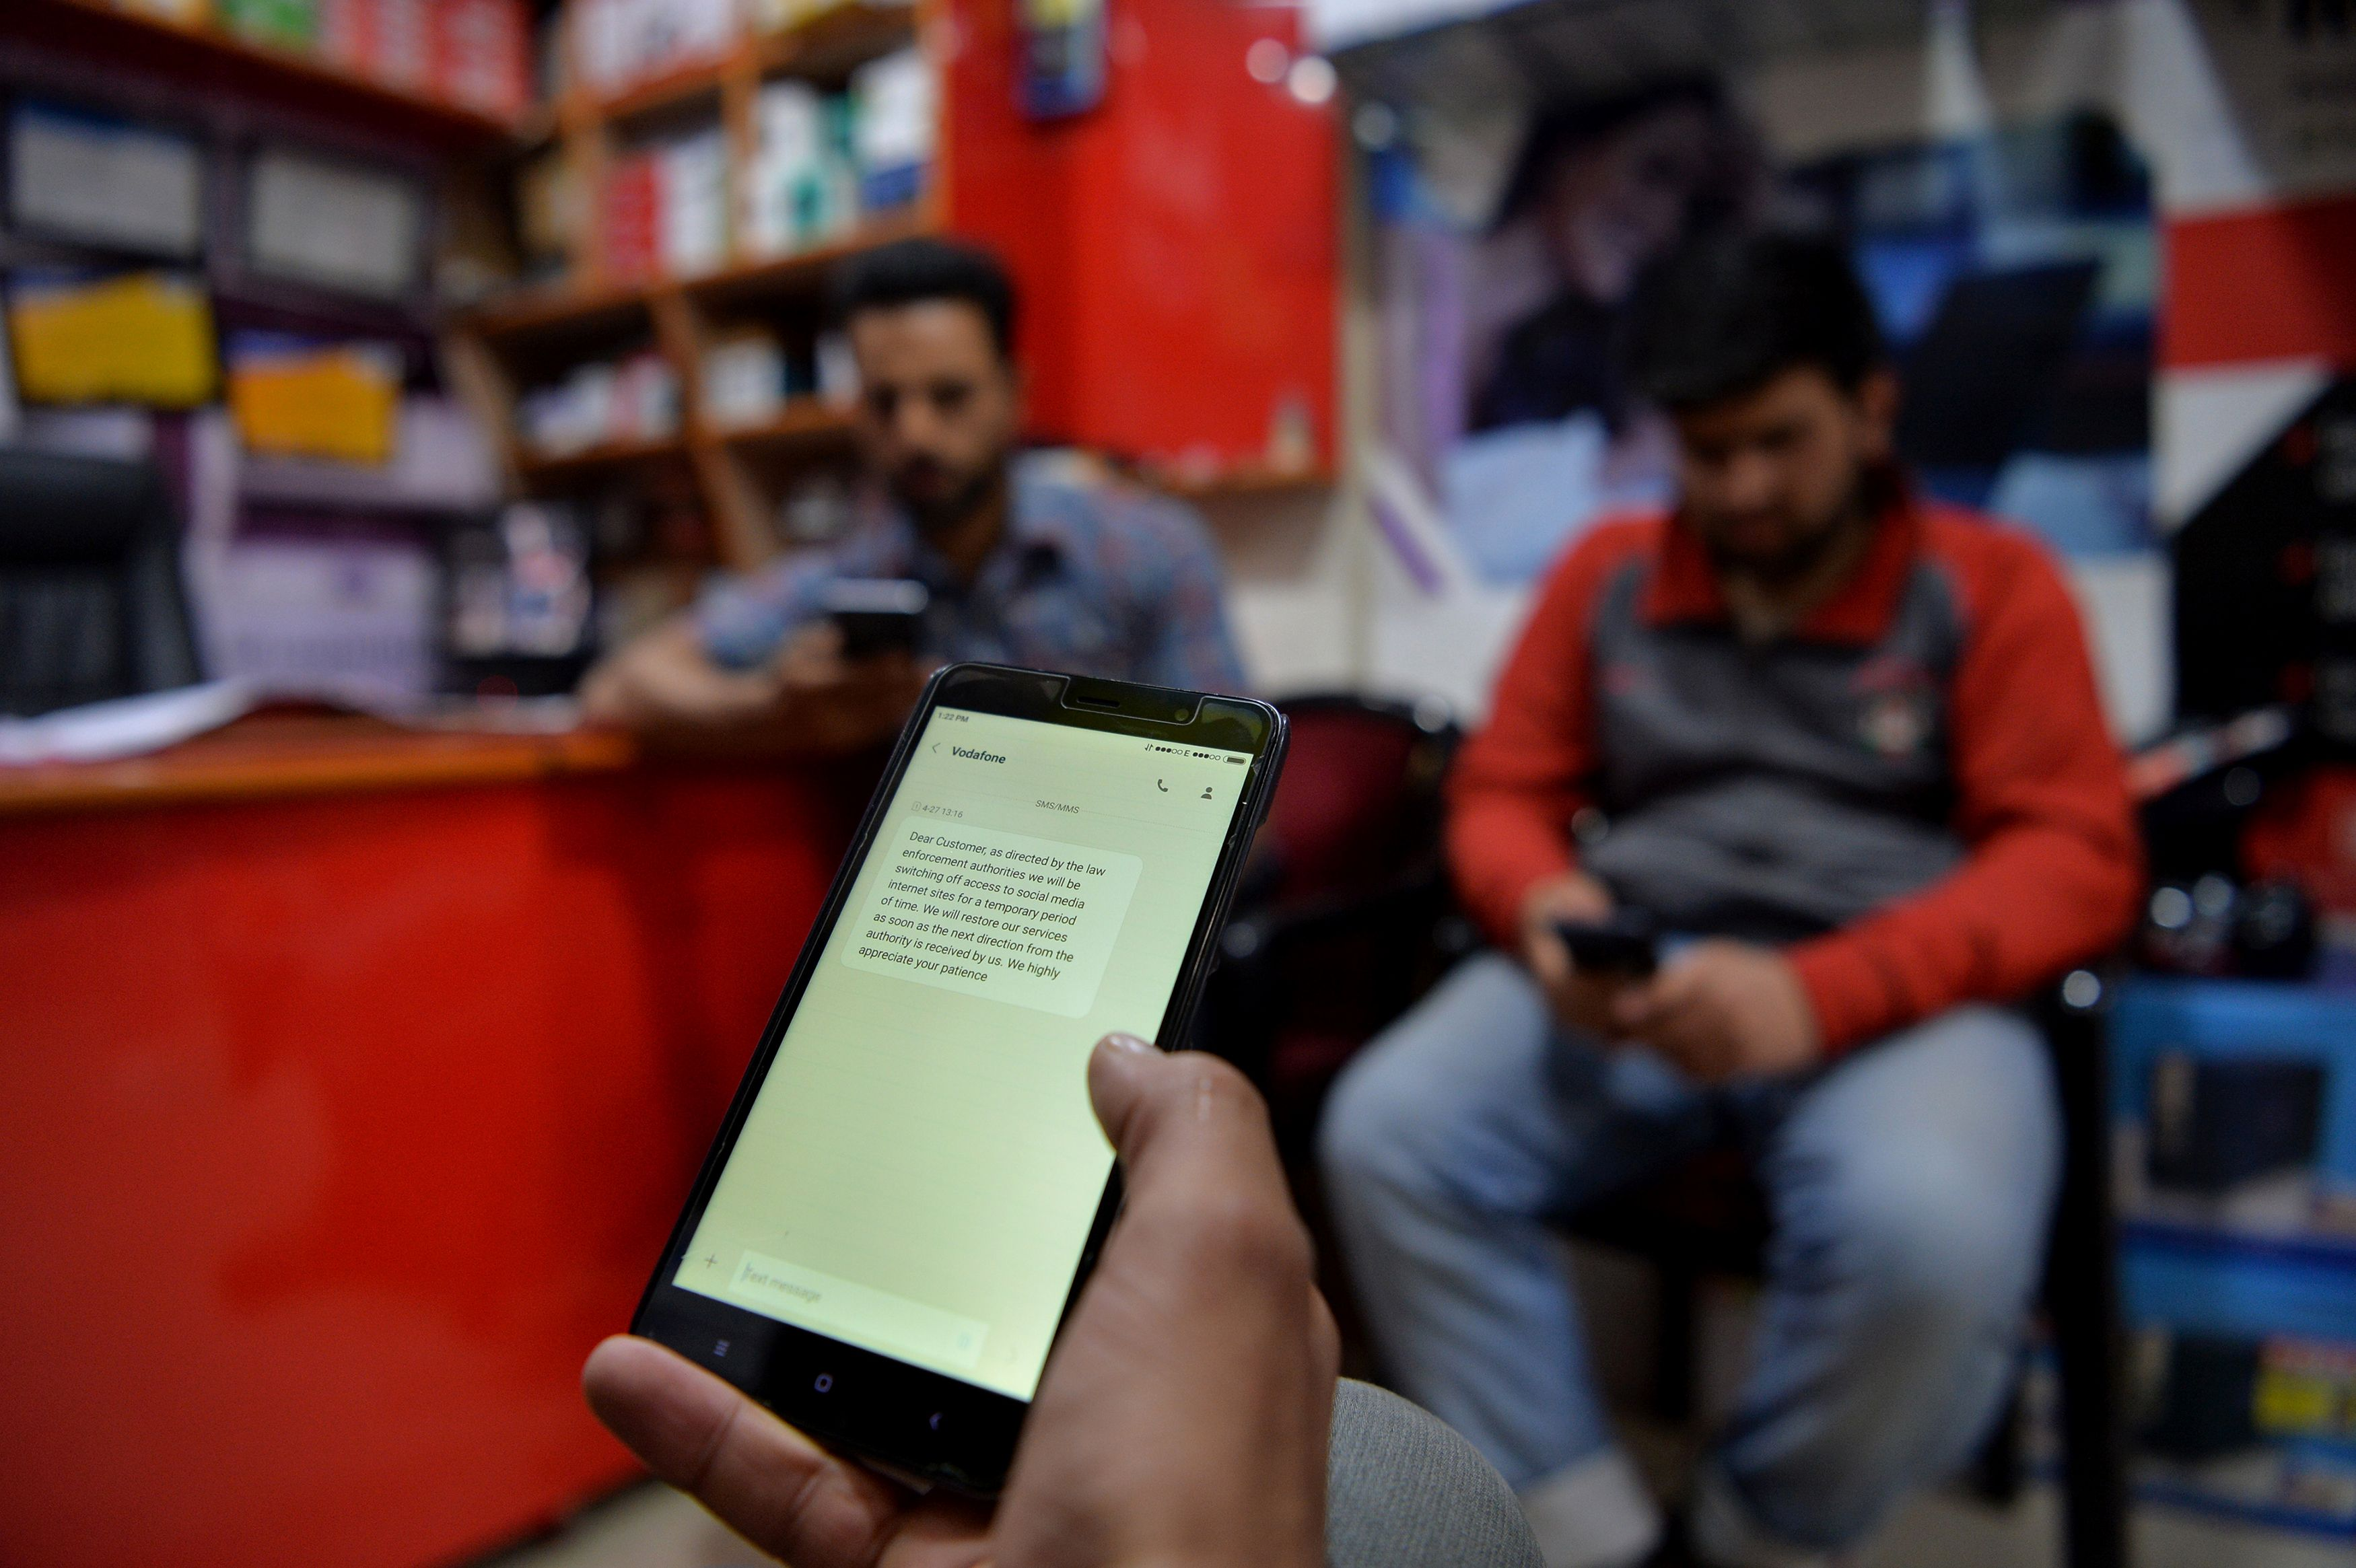 Authorities in Indian-administered Kashmir on April 26 ordered internet service providers to block popular social media services including Facebook, Twitter and WhatsApp after an upsurge in violence in the region. / AFP PHOTO / TAUSEEF MUSTAFA (Photo credit should read TAUSEEF MUSTAFA/AFP/Getty Images)